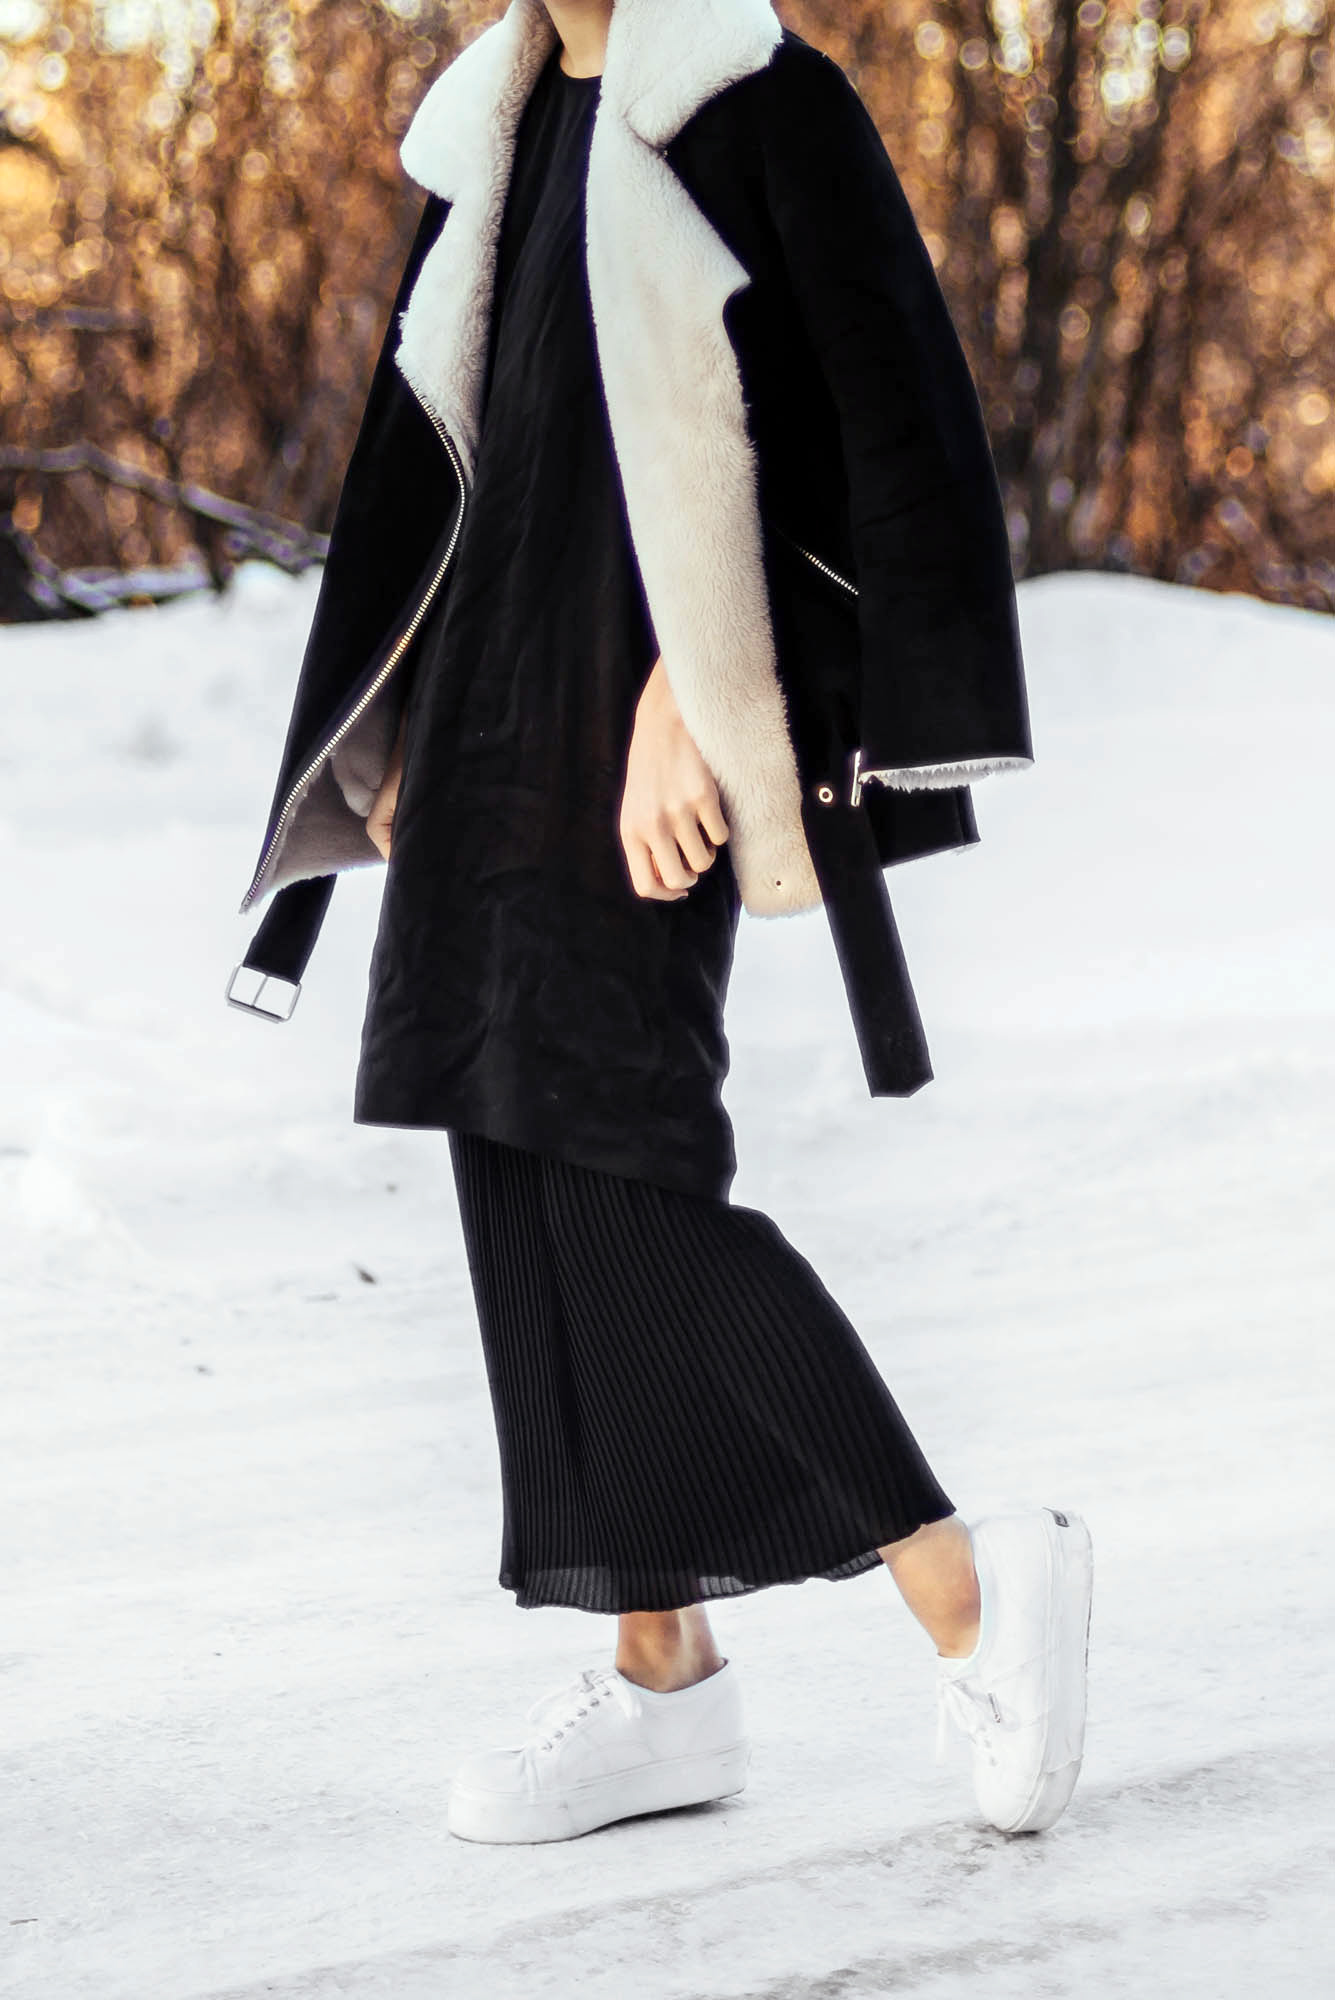 Shearling Coat Trend: Alyssa Lau is wearing a shearling coat